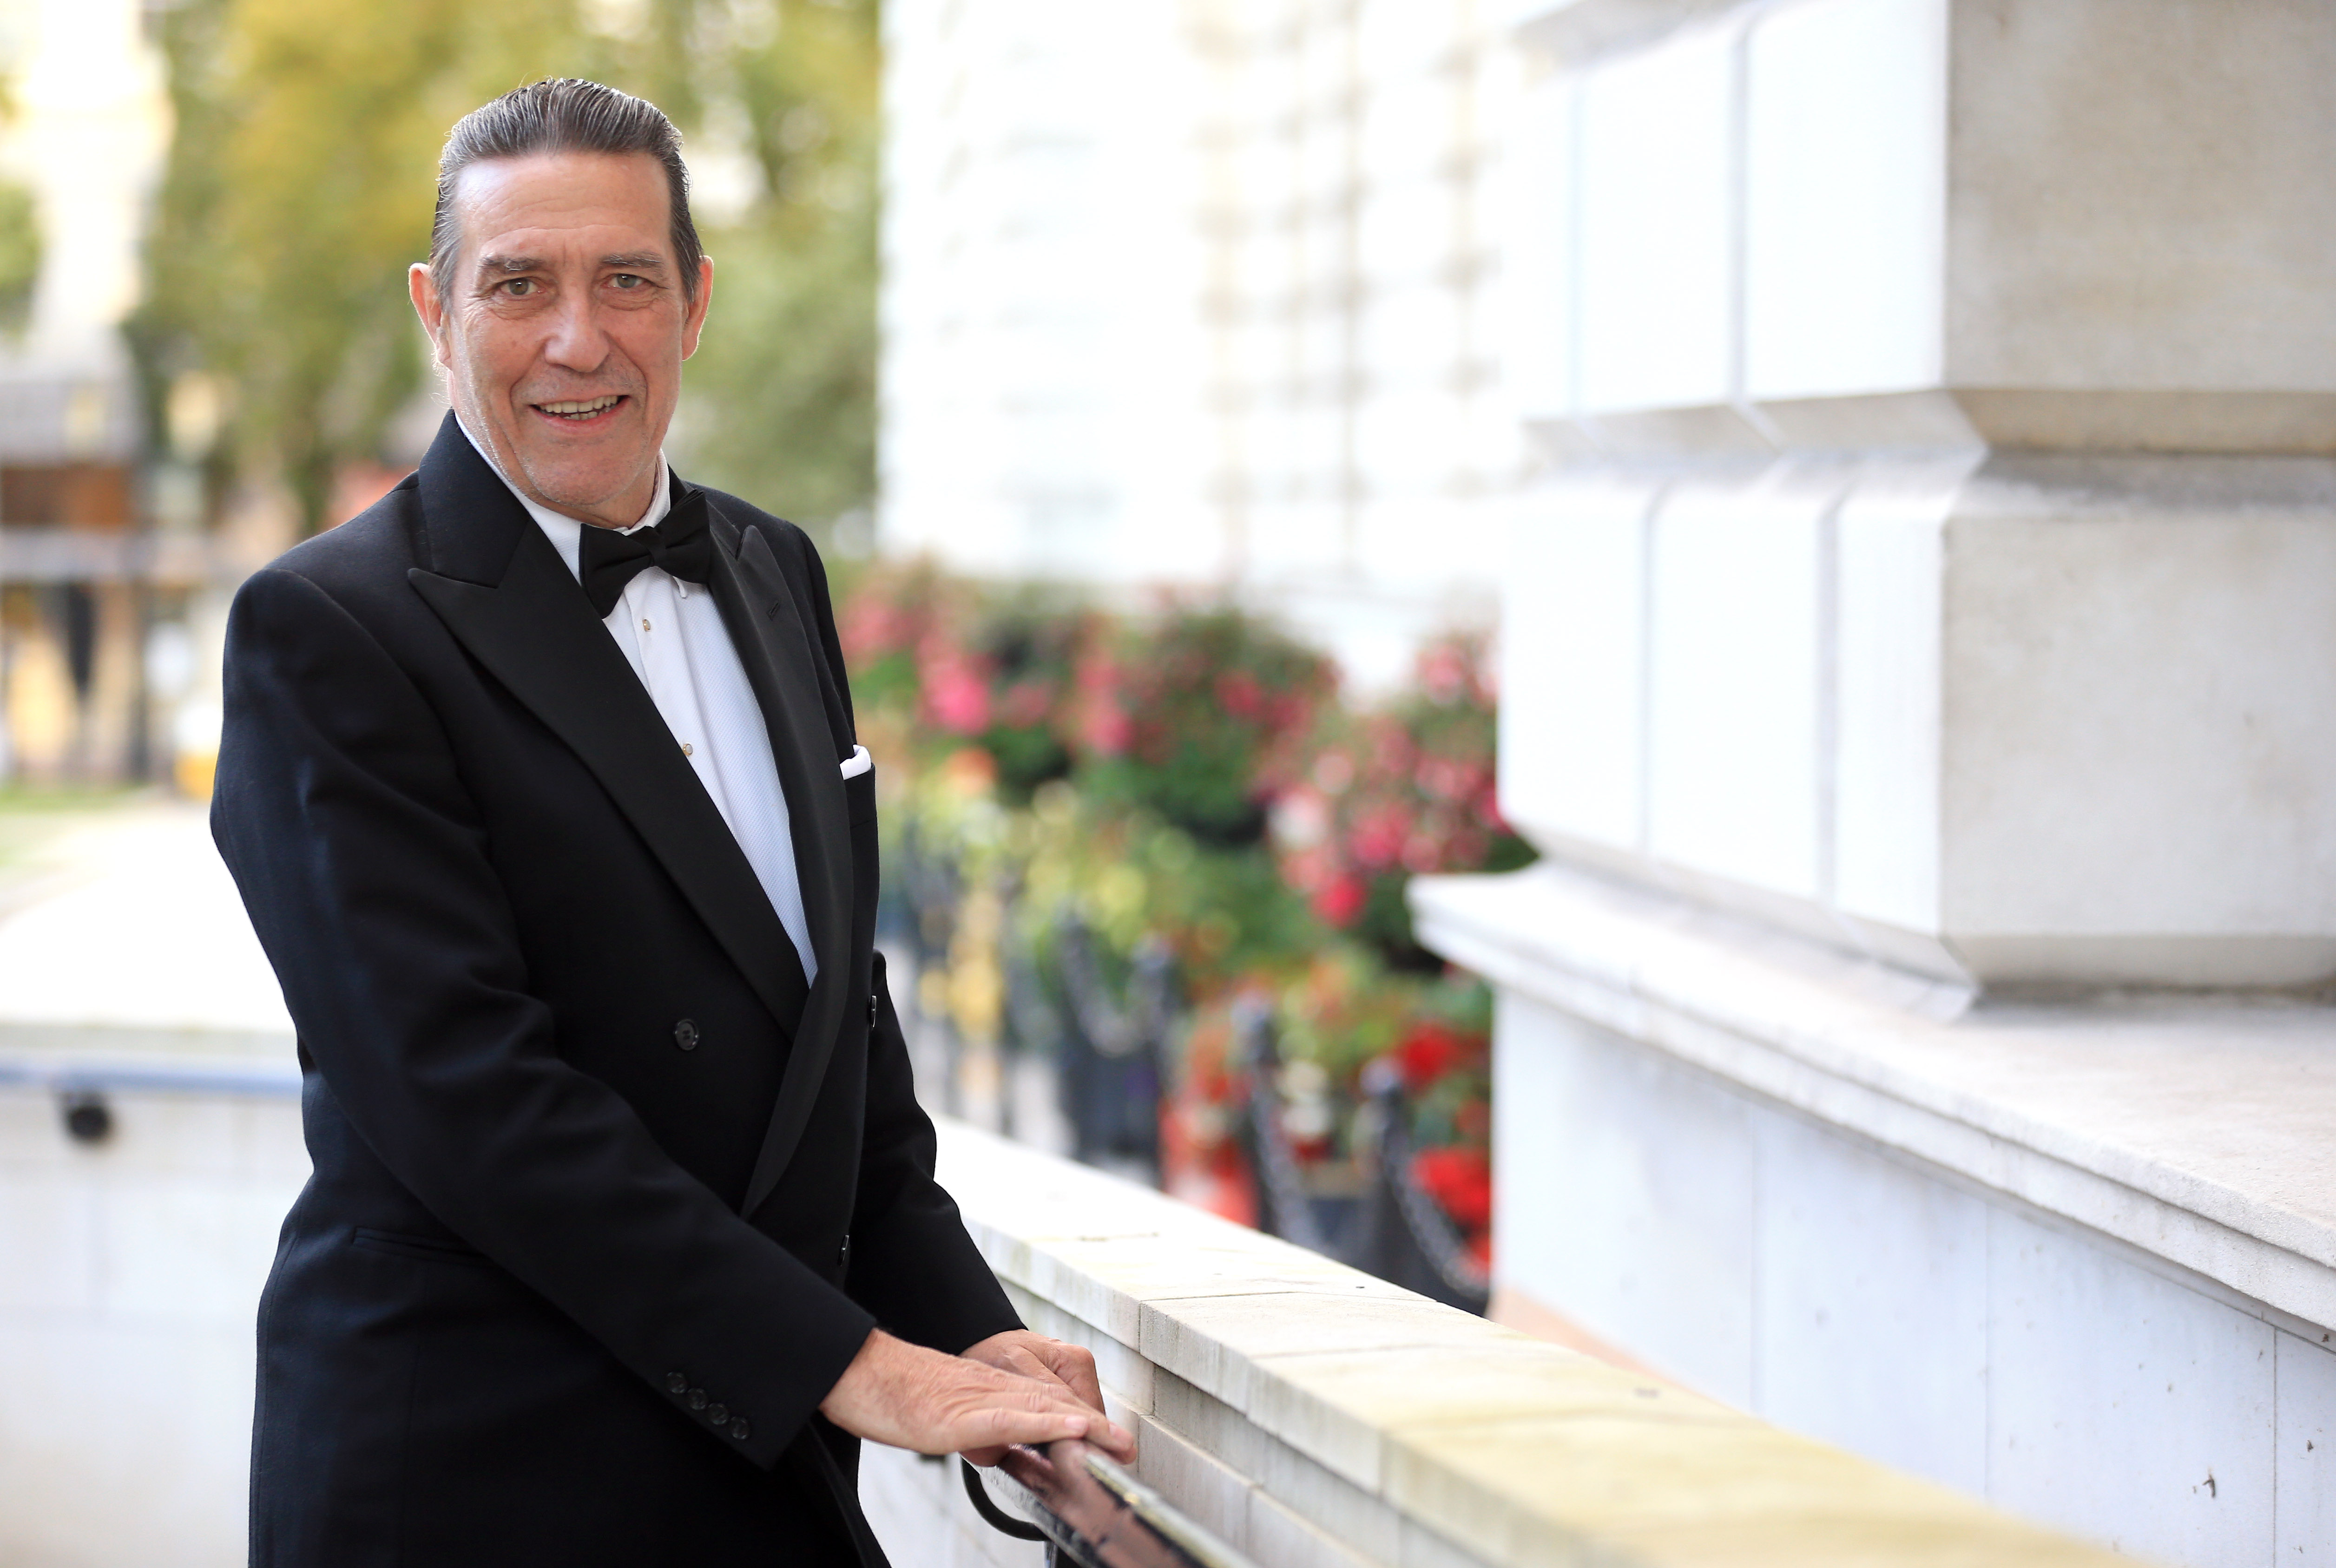 PACEMAKER, BELFAST, 6/9/2018: Ciaran Hinds, the winner of the Lifetime Achievement Award at the Ulster Tatler Awards at Belfast City Hall. The Belfast-born actor was honoured for his impressive Hollywood and Theatrical career which is recognised all across the world. Northern IrelandÕs longest-running glossy magazine, Ulster Tatler, is celebrating over 50 years on the shelves of NI, and its eleventh annual awards recognise the people and businesses of Northern Ireland that have lit up its pages since 1966. PICTURE BY STEPHEN DAVISON